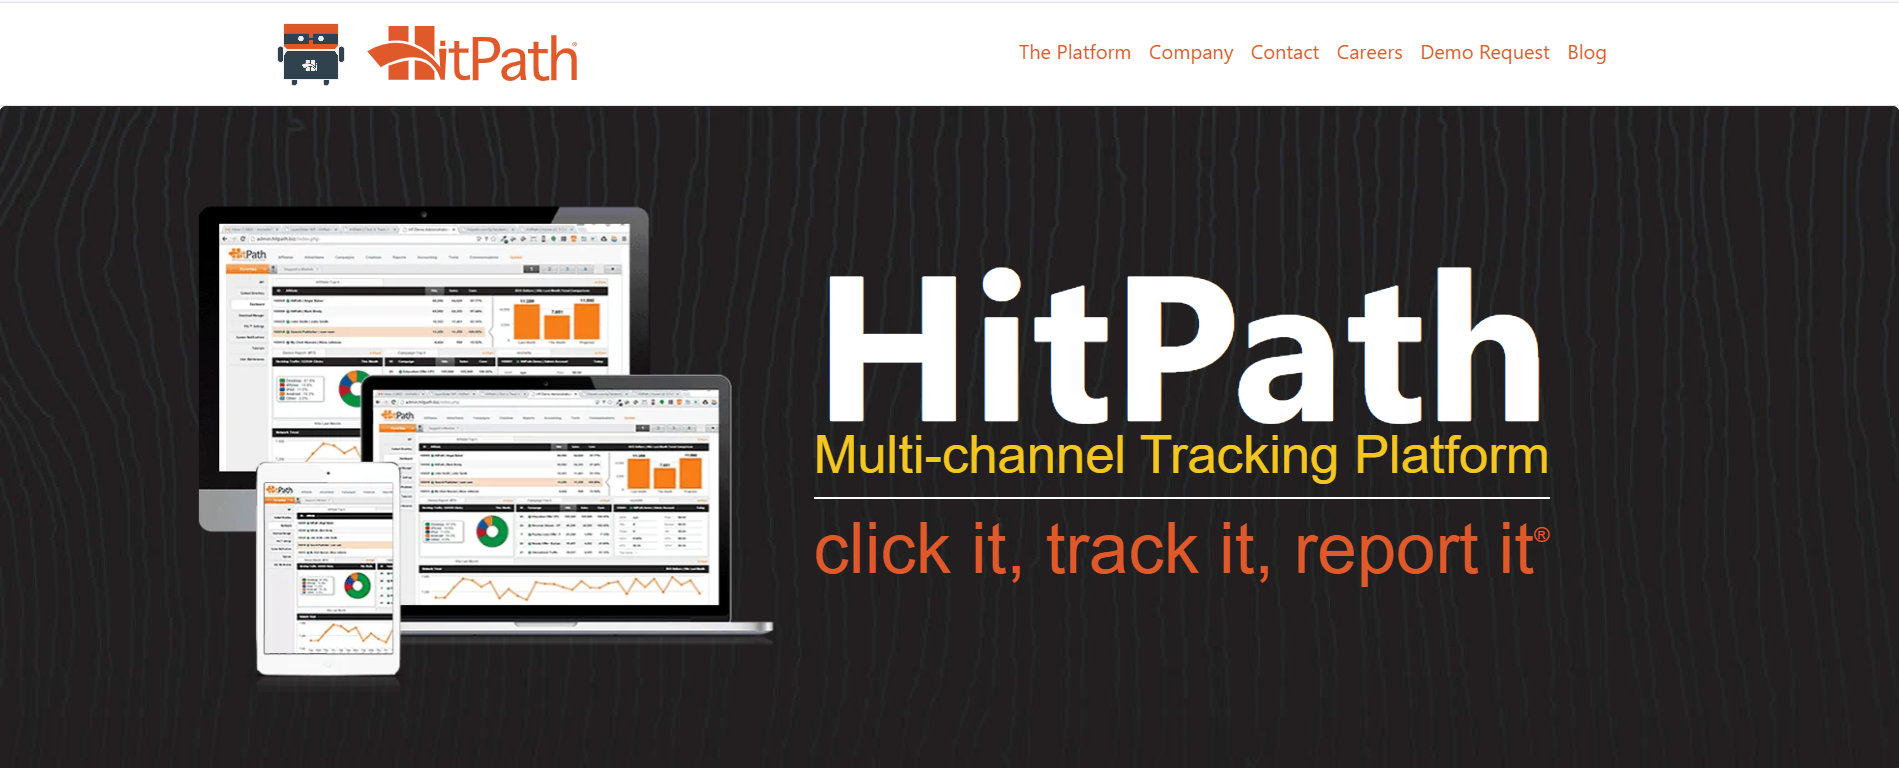 Hitpath-Overview